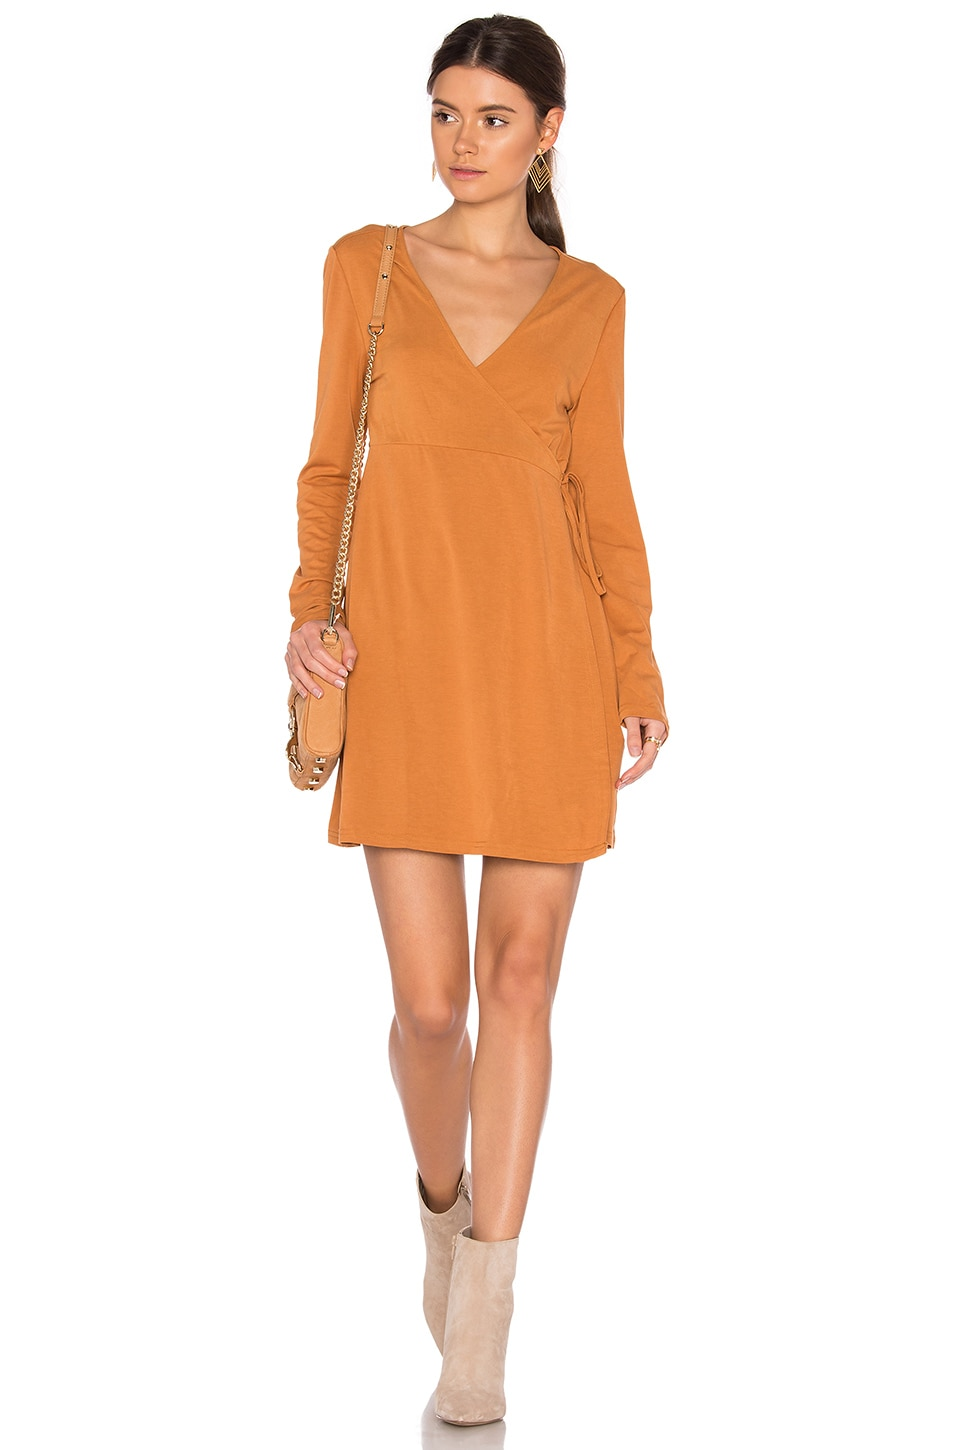 We Were Young Wrap Dress by Somedays Lovin